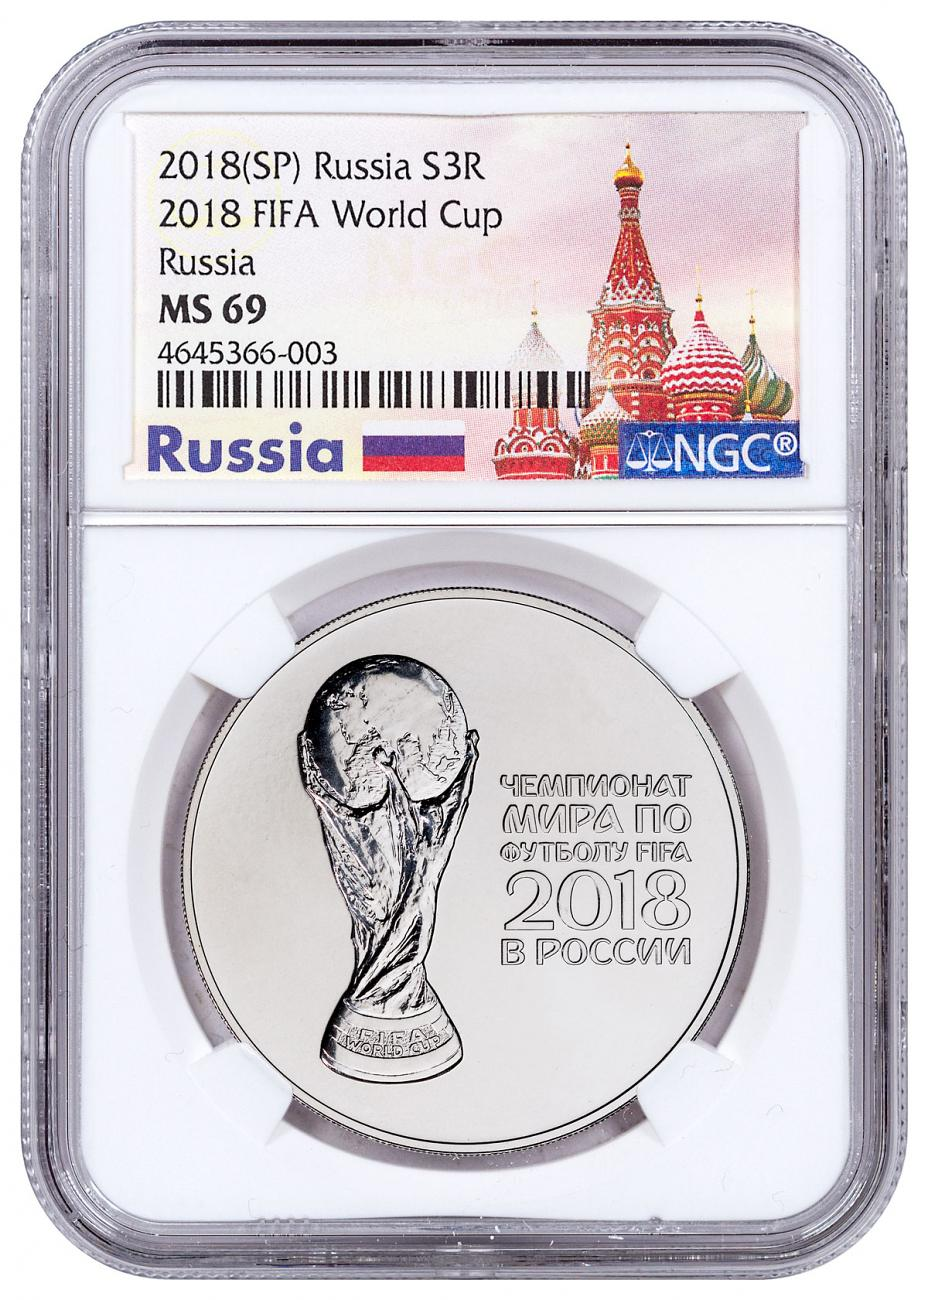 2018 Russia FIFA World Cup 1 oz Silver 3 Ruble Coin NGC MS69 Exclusive Russia Label